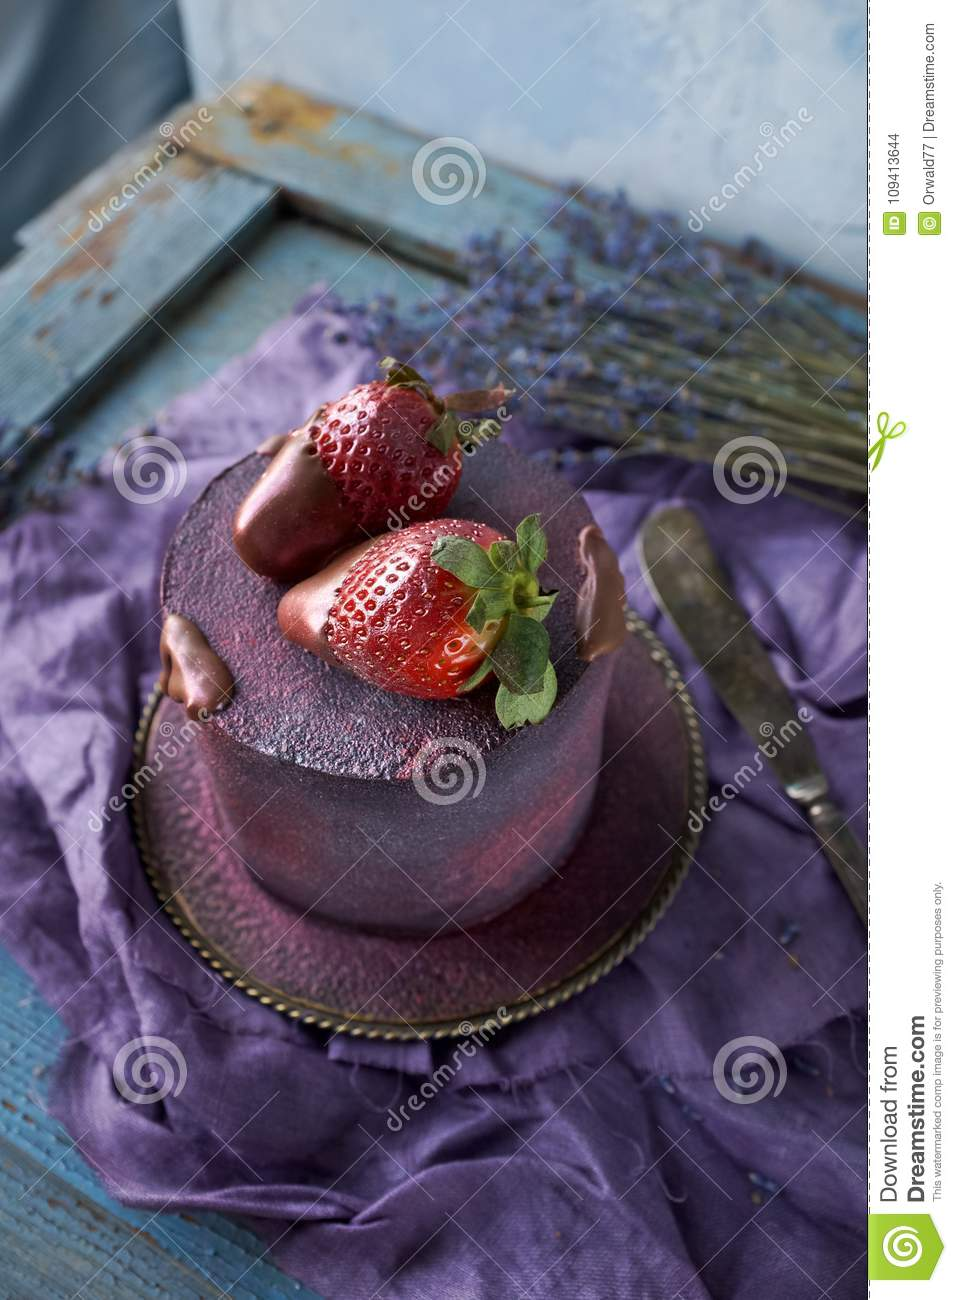 Beautiful Purple Cake Decorated With Chocolate And Strawberries